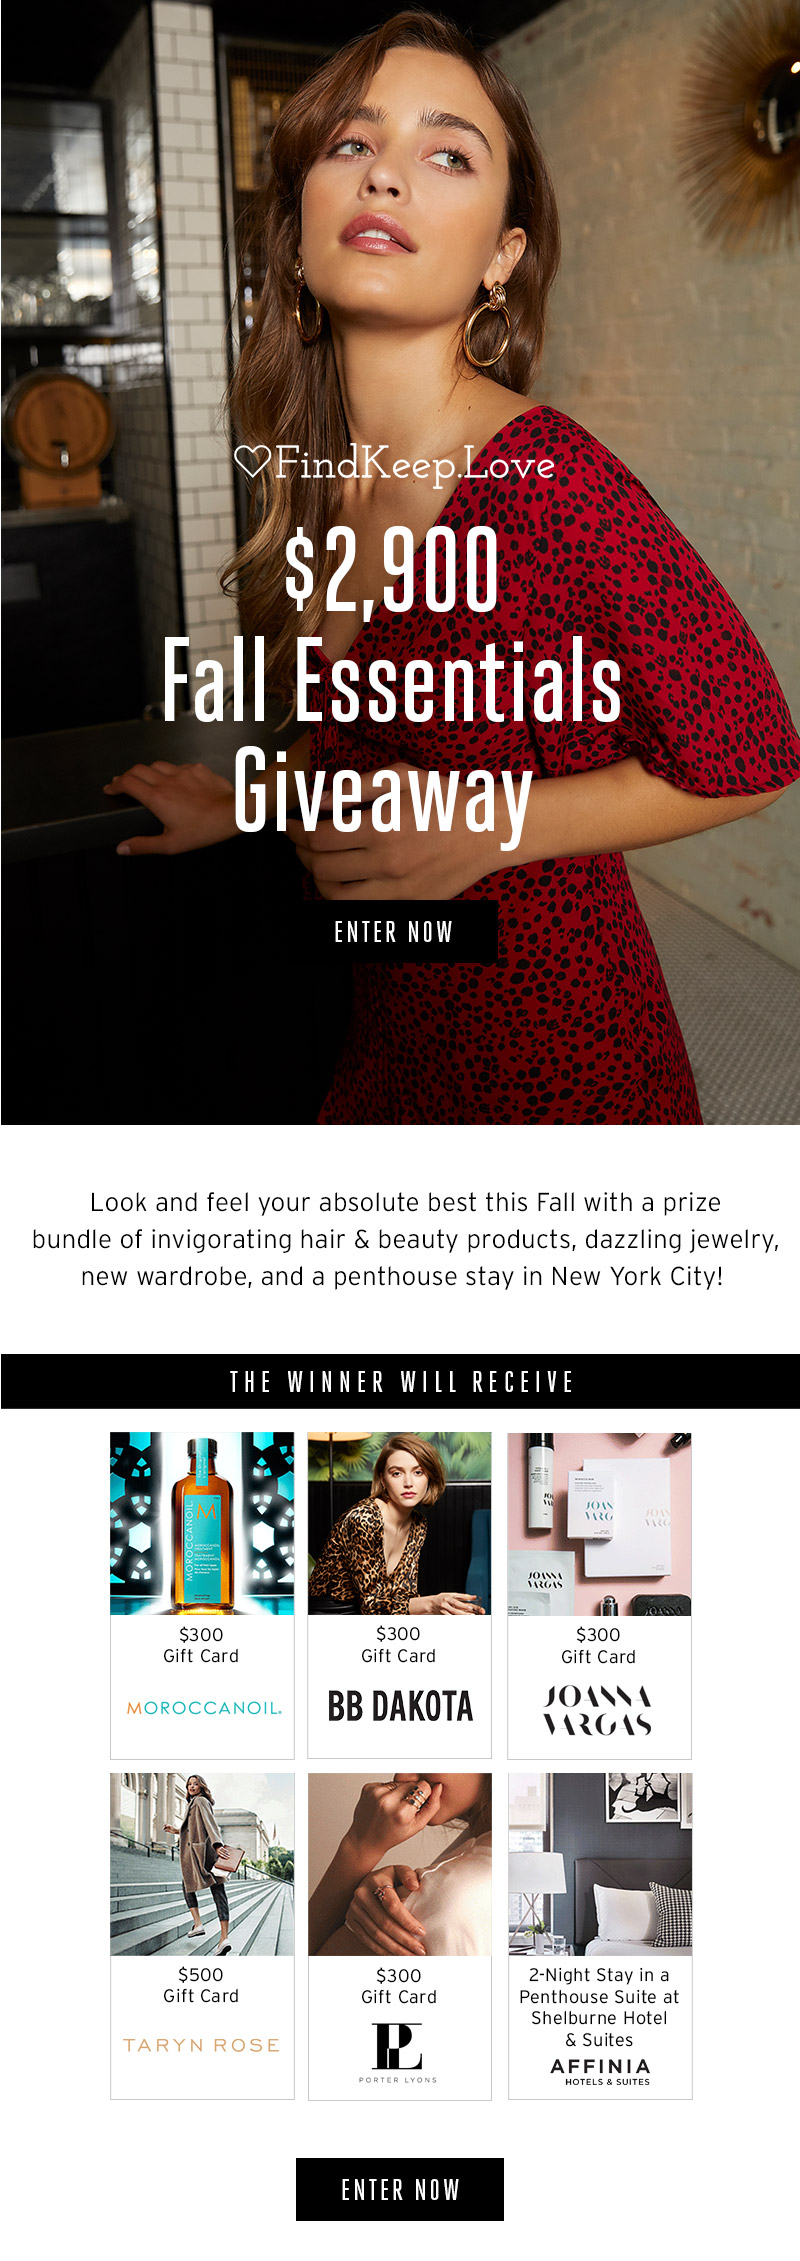 Find keep love. $2,900 Fall Essentials Giveaway. Enter now.